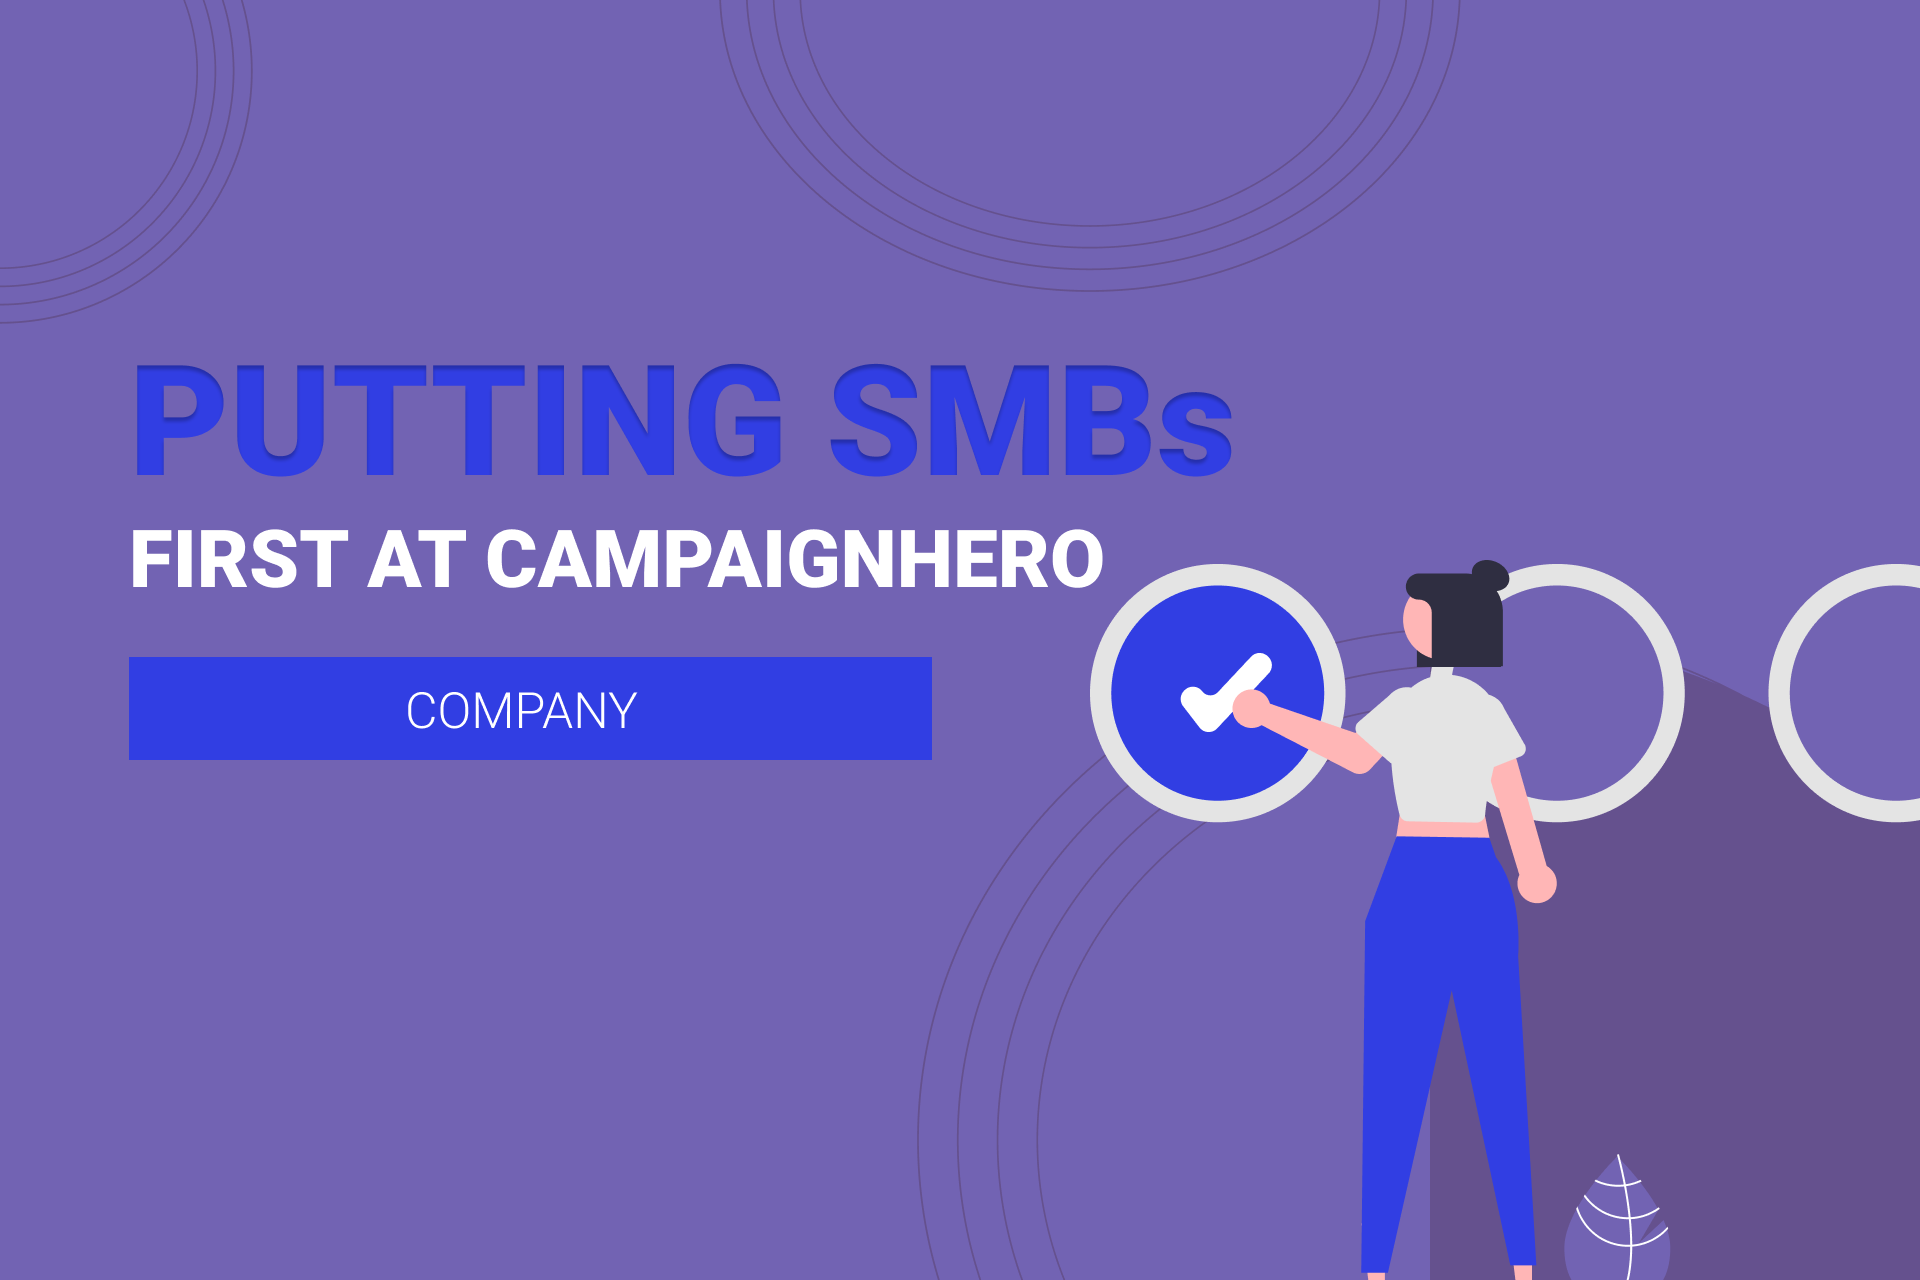 Putting SMBs First At CampaignHero